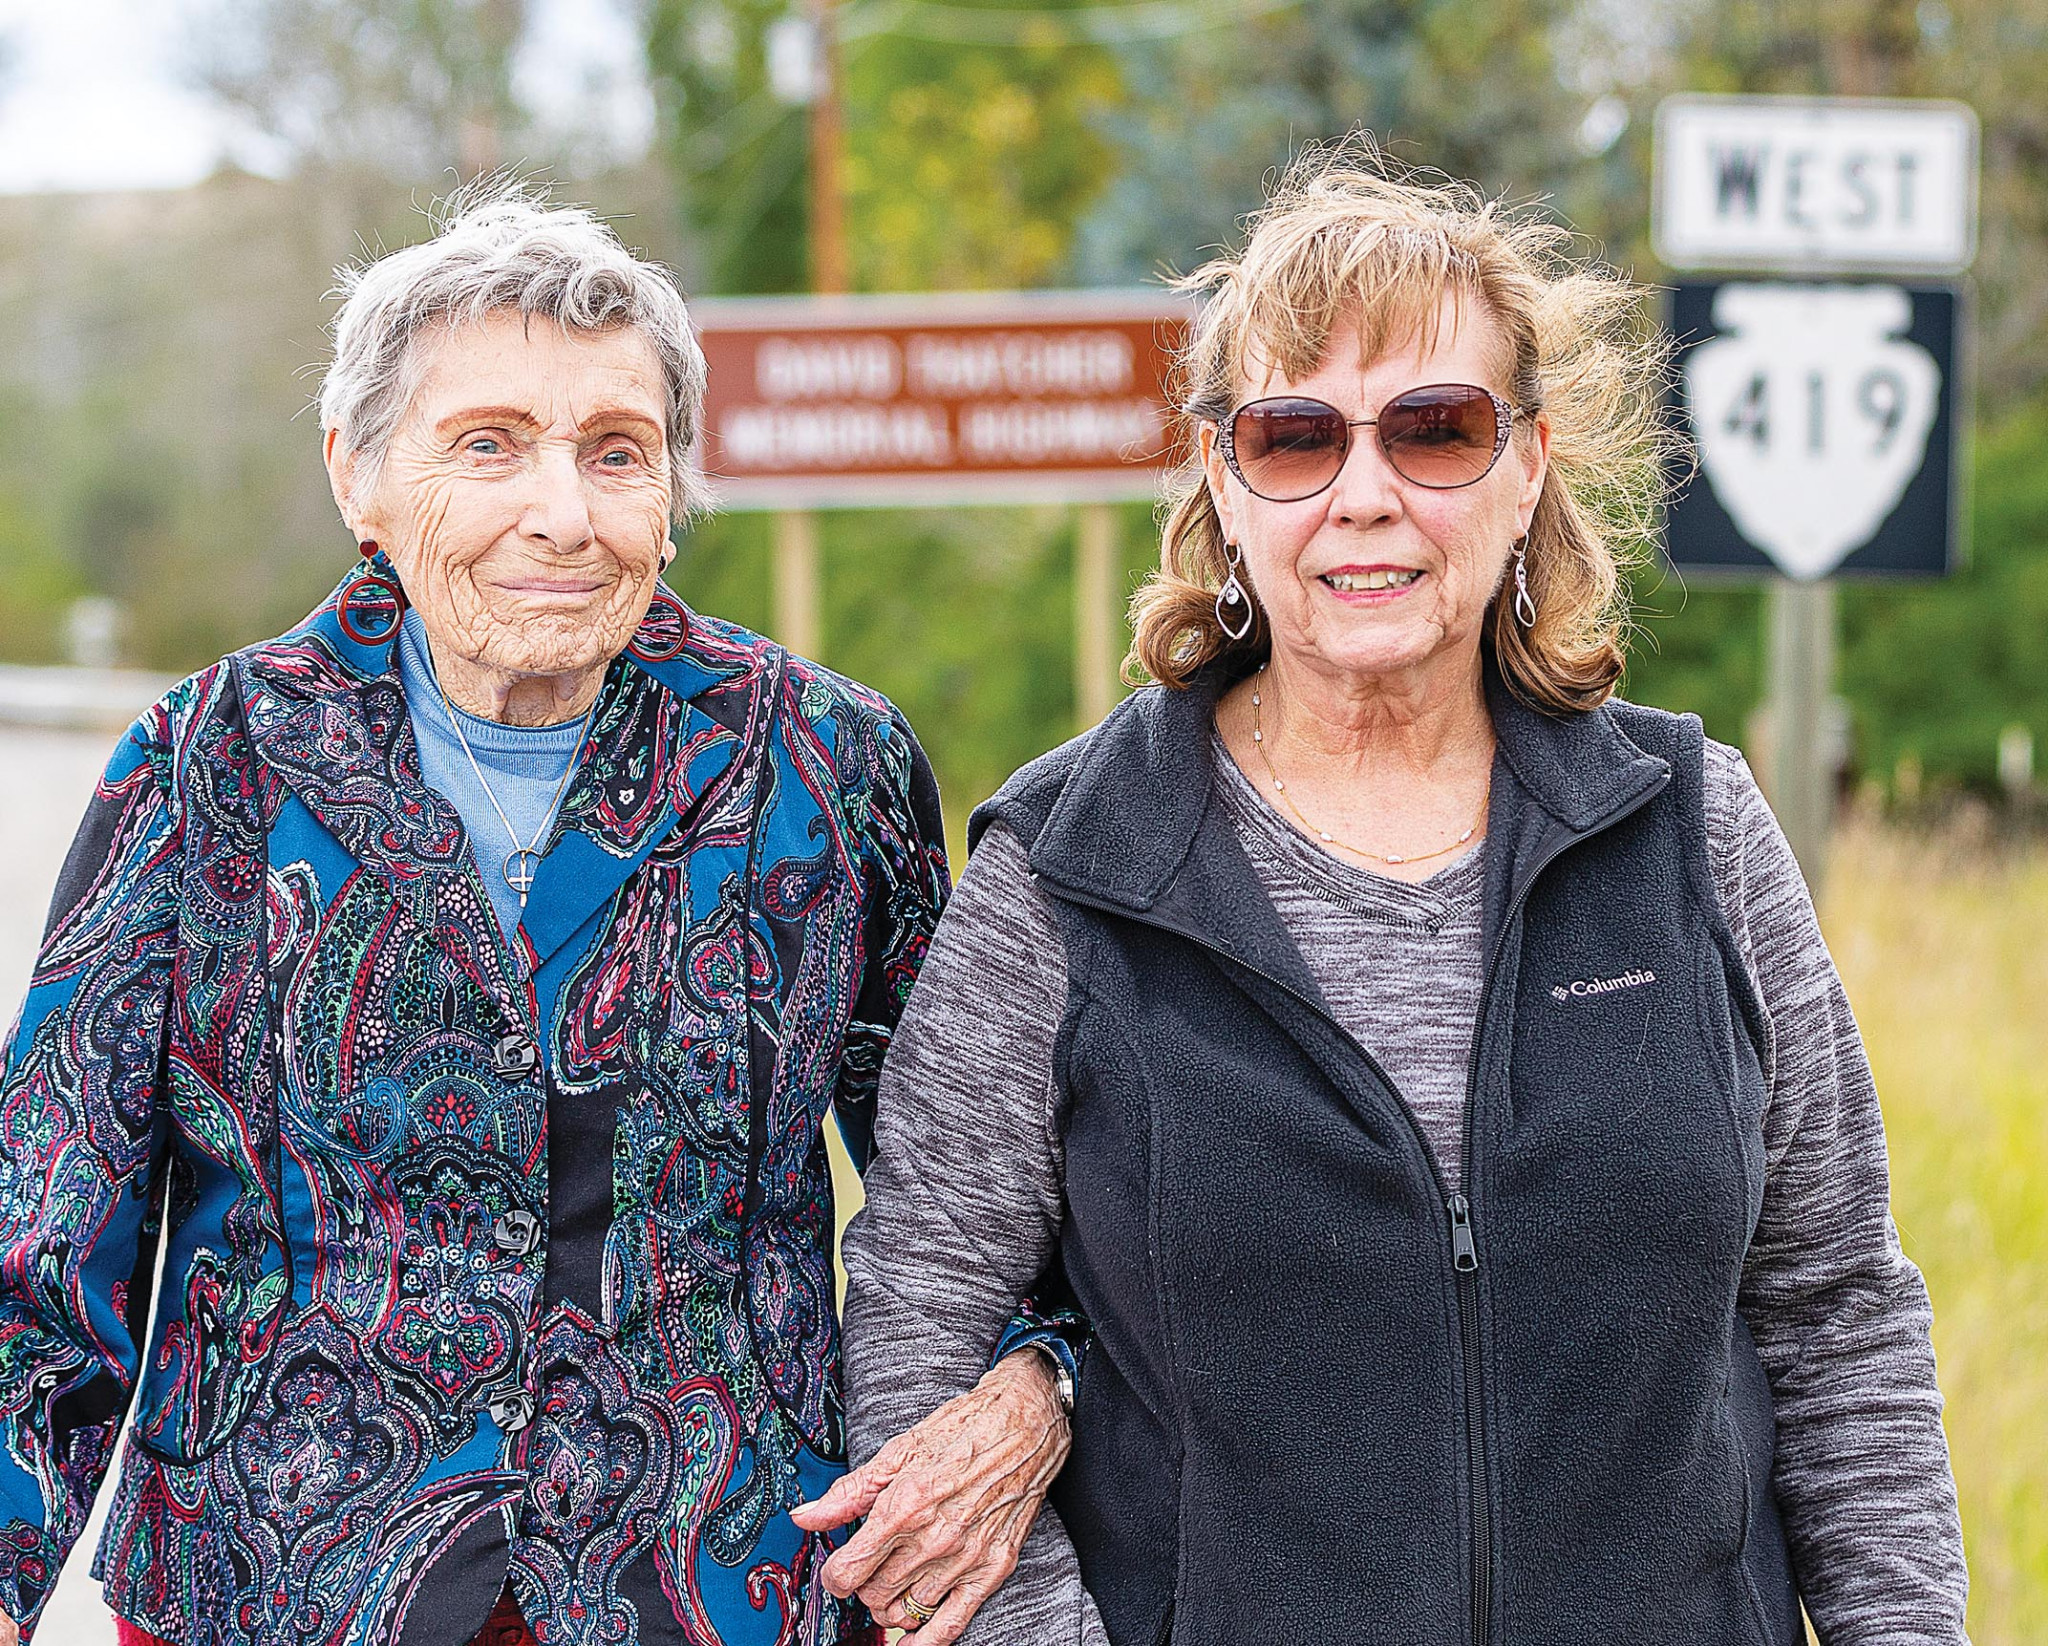 Photo by Maurice CravensThatcher's wife and daughter — Dawn Thatcher and Sandy Miller — pose in front of the new highway sign.